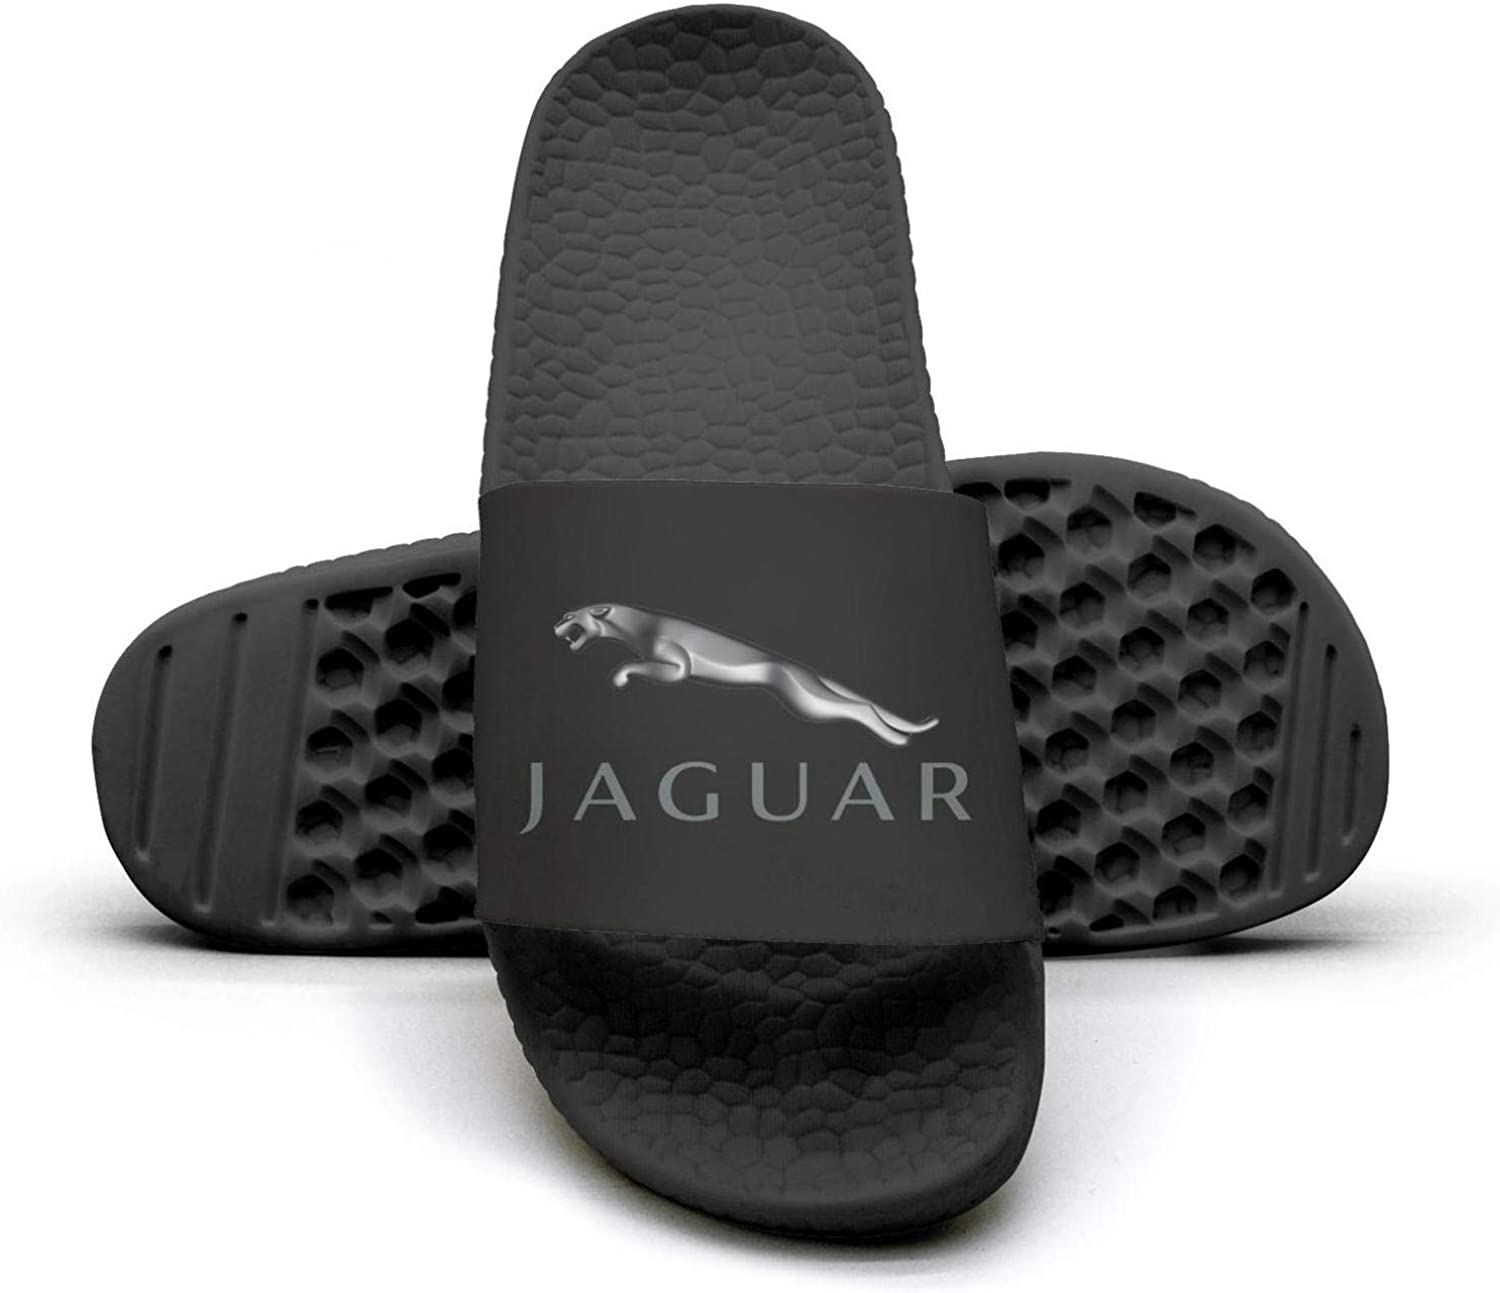 EIGKASL Printed Non-Slip Slipper Slide flip Flop Sandals Jaguar-Emblem-Logo-Symbol-Summer Stylish for Womens